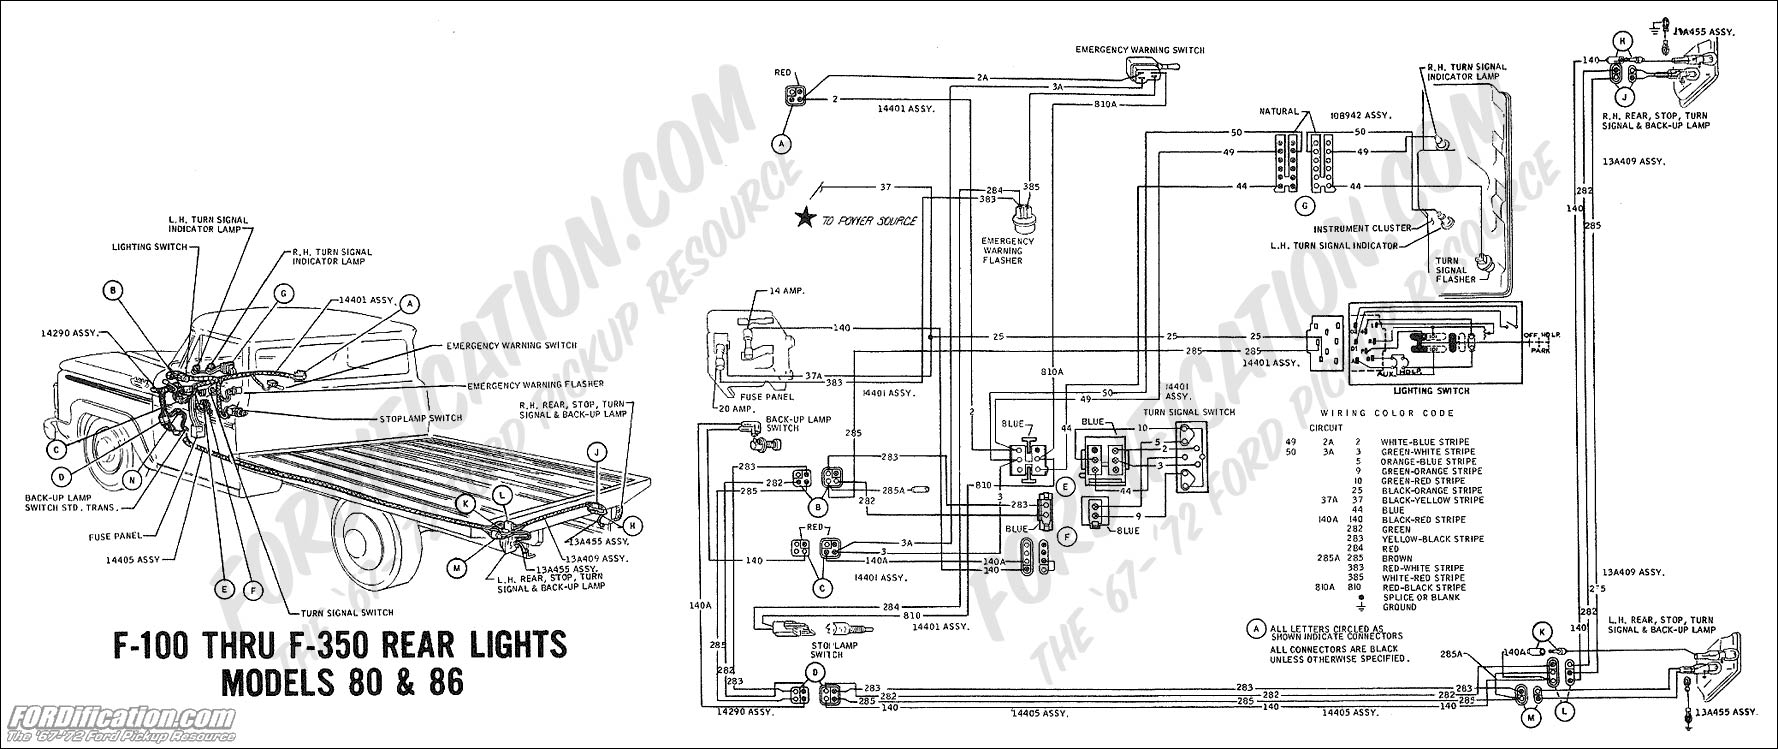 86 Ford F 150 Engine Wiring Harness Diagrams Library Also 1977 Truck On Best Diagram For Technical Drawings And Schematics Section H Rh Fordification Com 1986